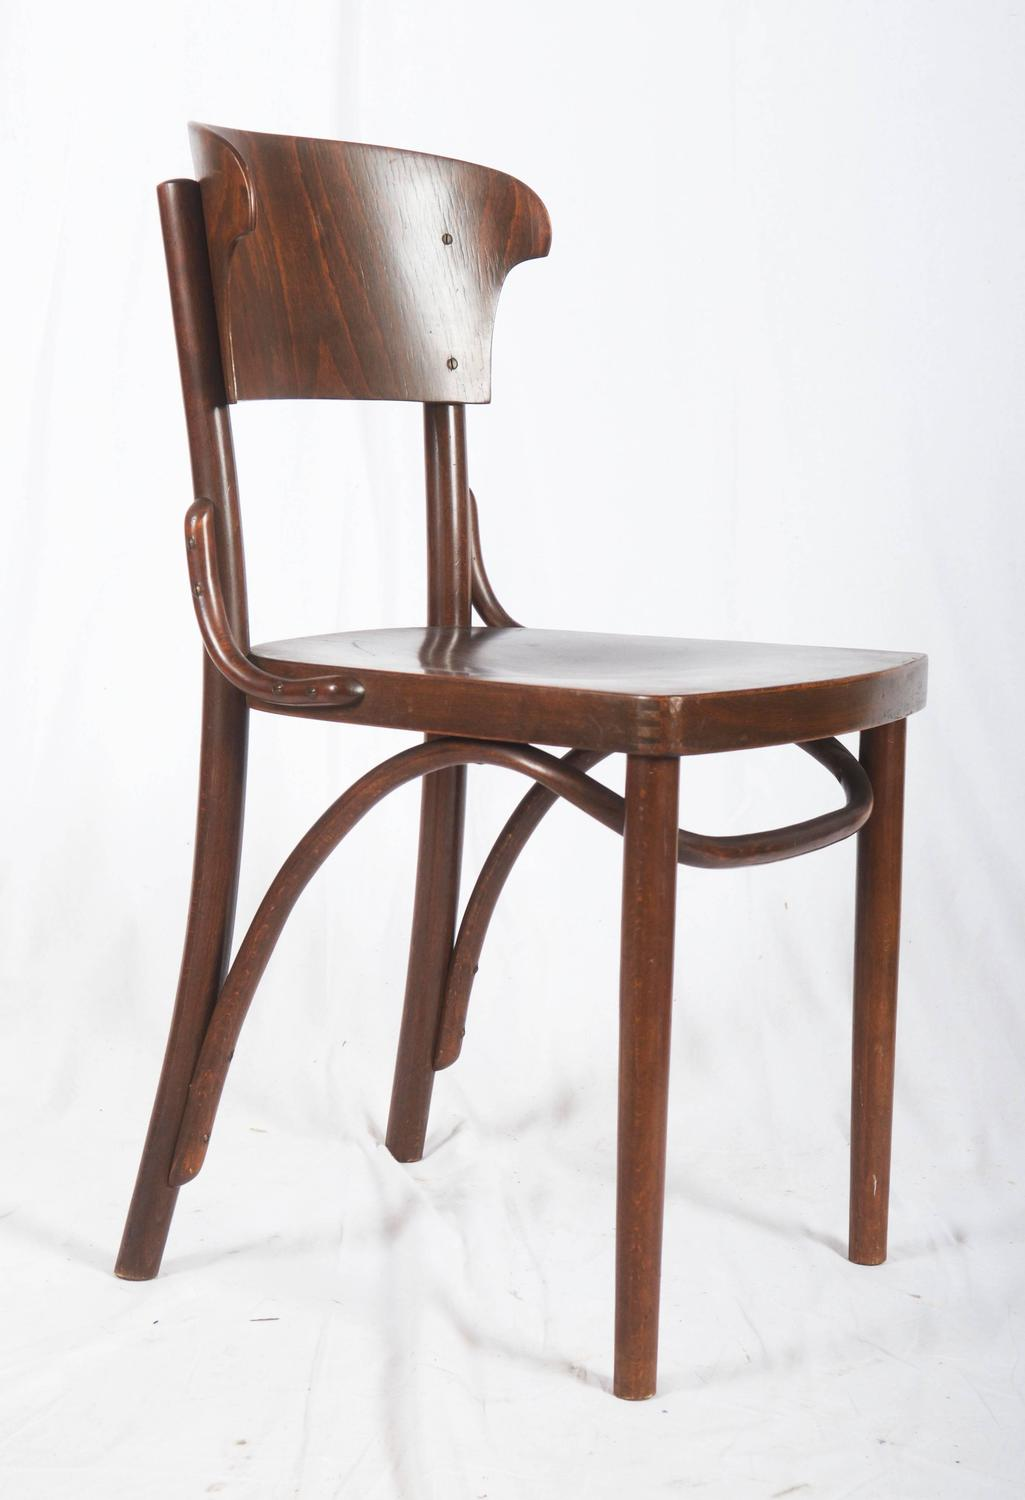 Set of four chairs by thonet for sale at 1stdibs for Chair design 1930